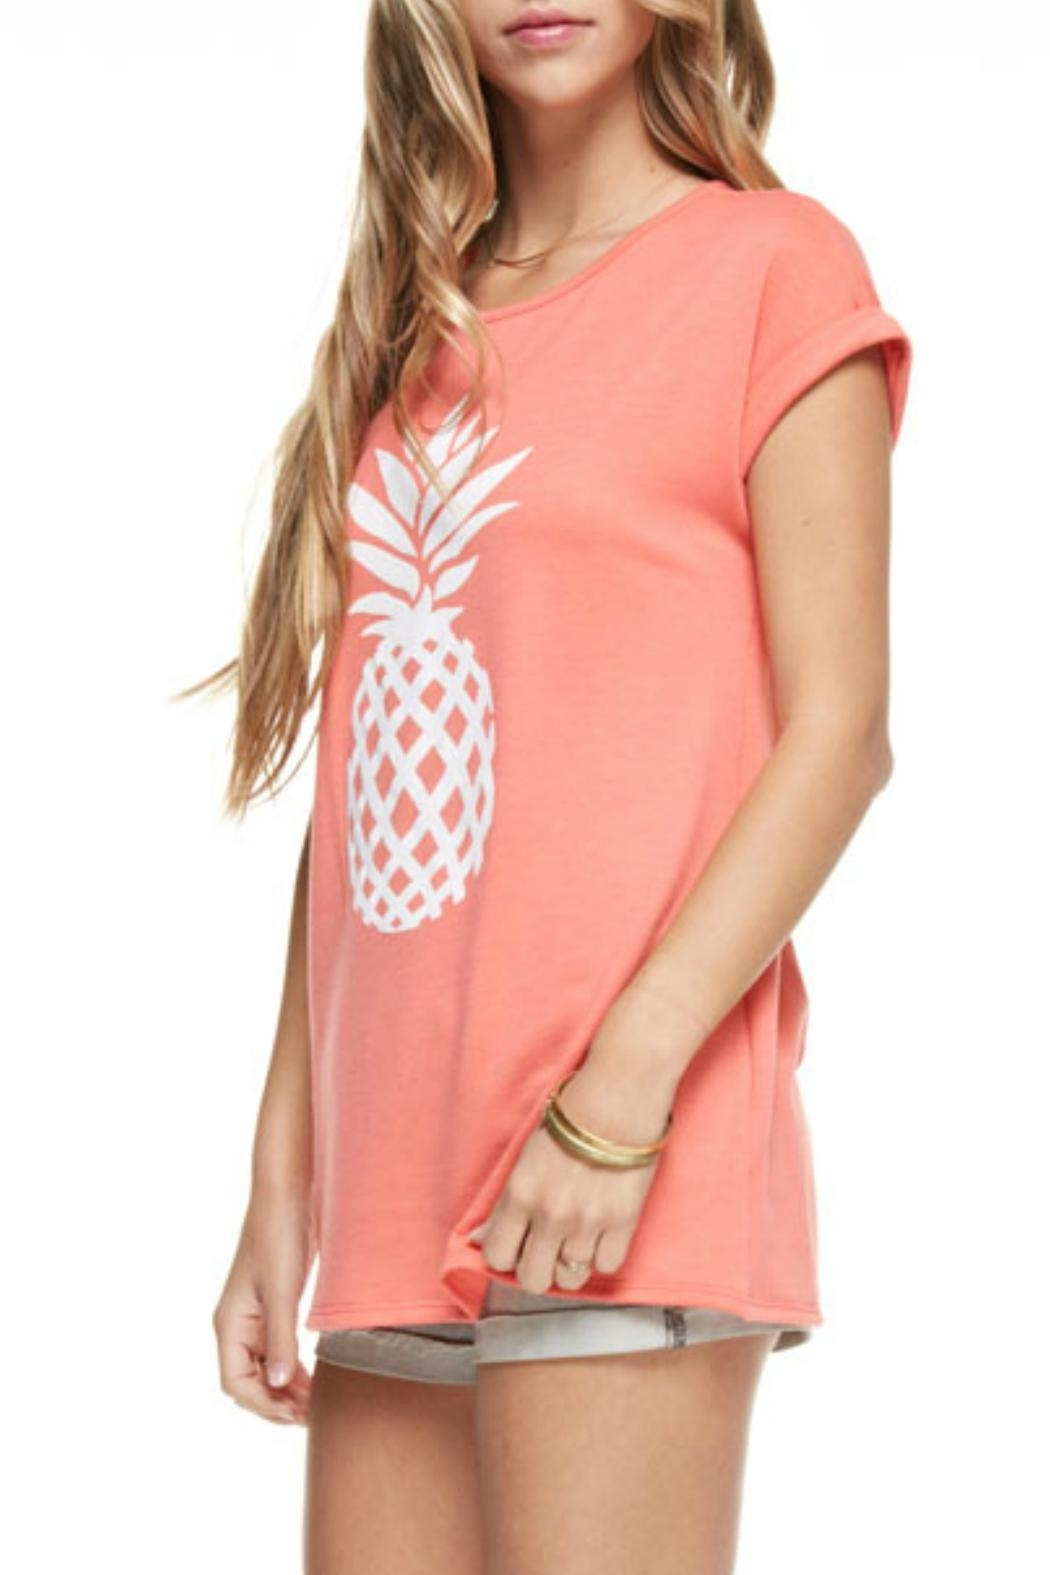 12pm by Mon Ami Coral Pineapple Top - Front Full Image